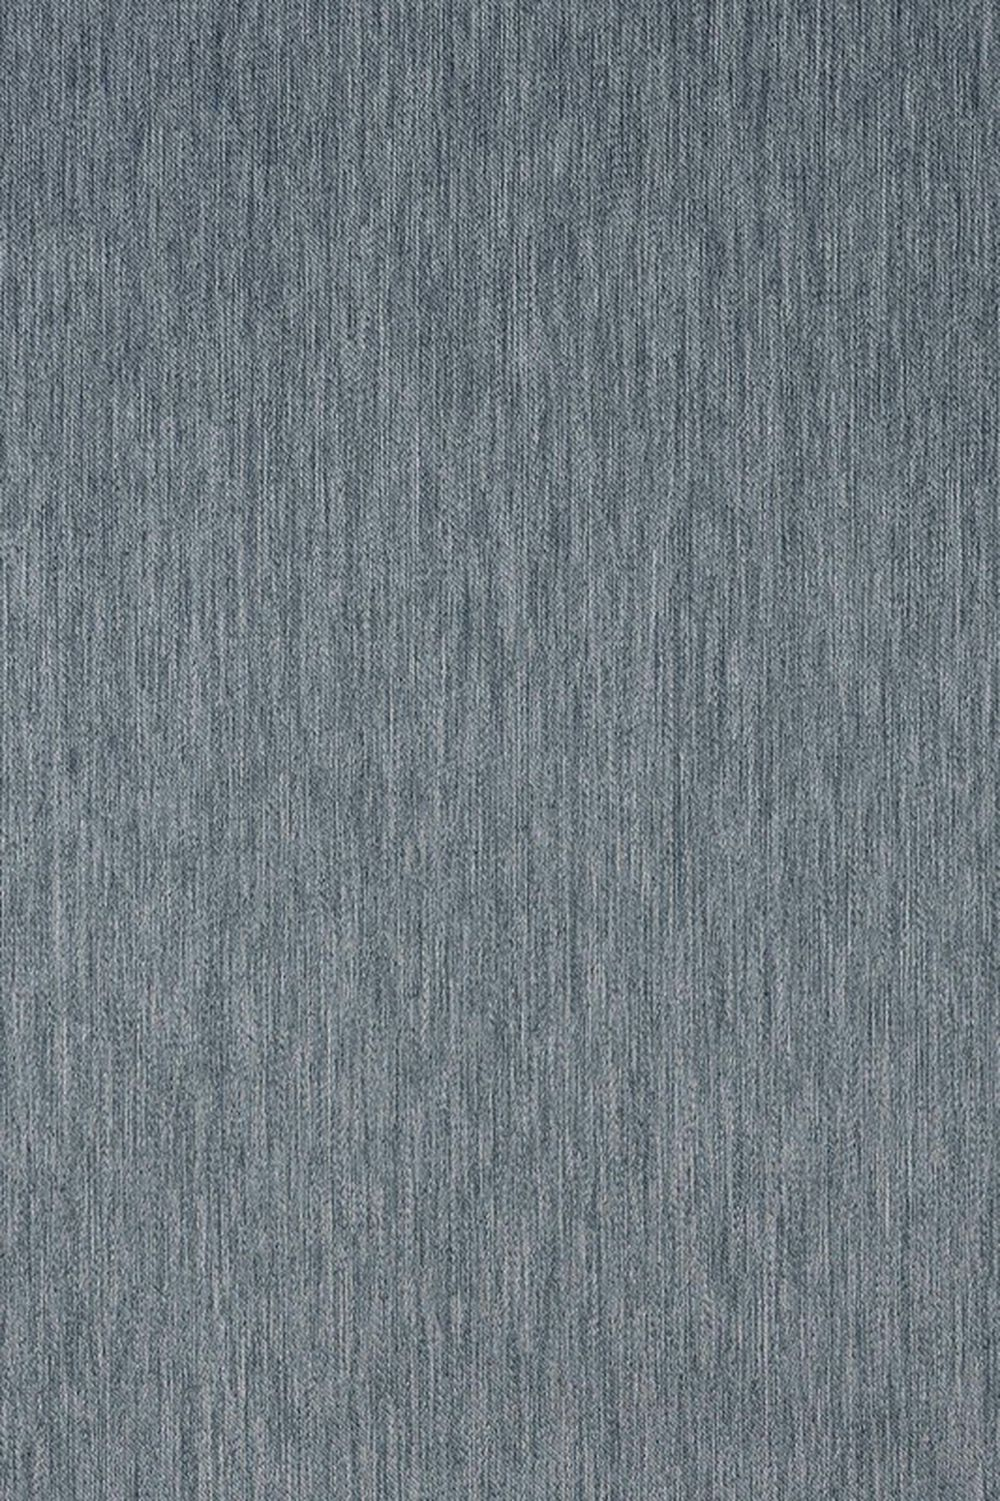 Photo of the fabric Shield FR Denim swatch by James Dunlop Essentials. Use for Curtains. Style of Plain